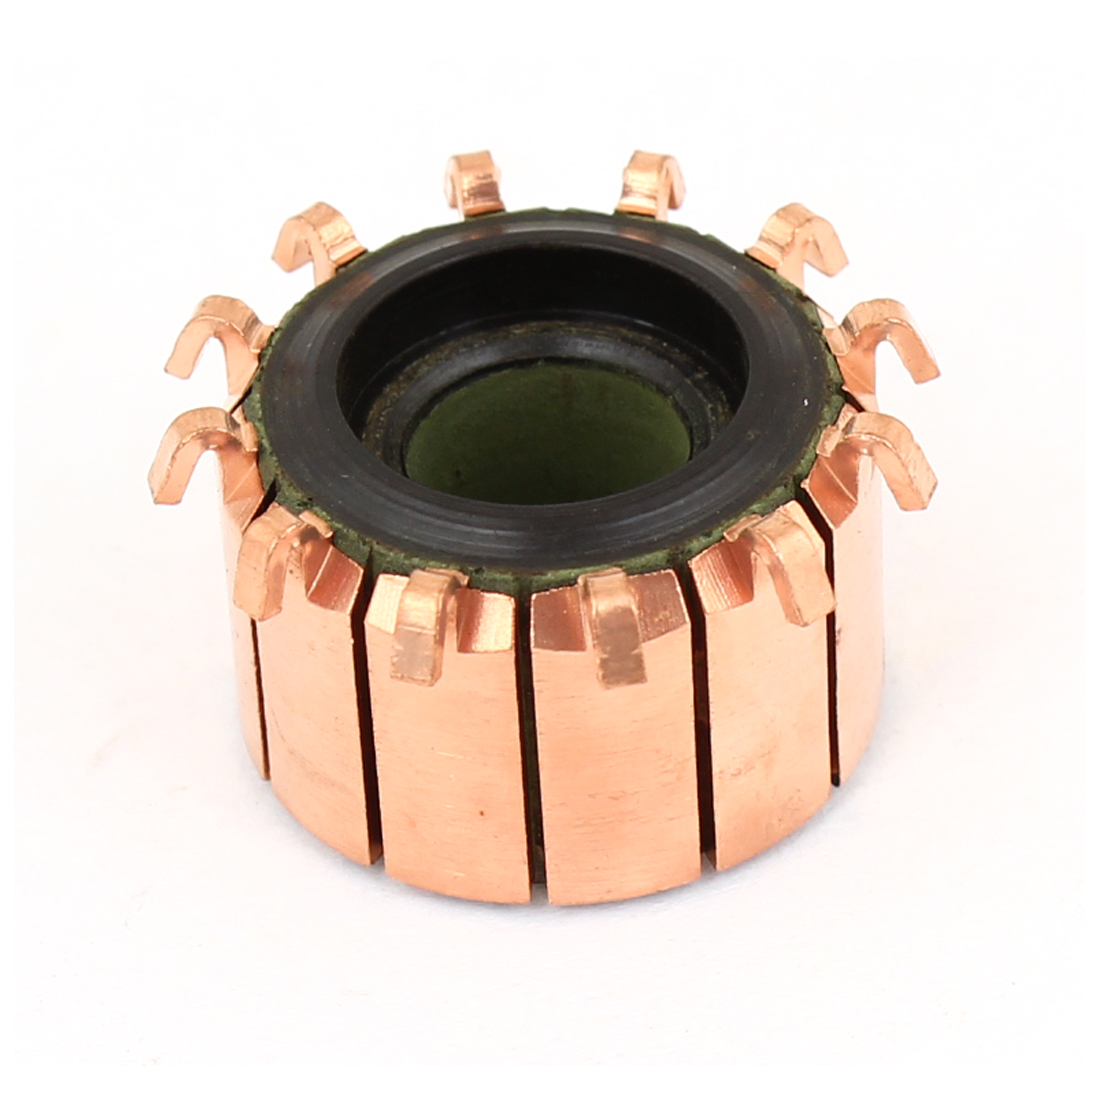 цены Dmiotech 18.9Mm Od 12.5Mm High 12 Tooth Copper Shell Mounted On Armature Commutator